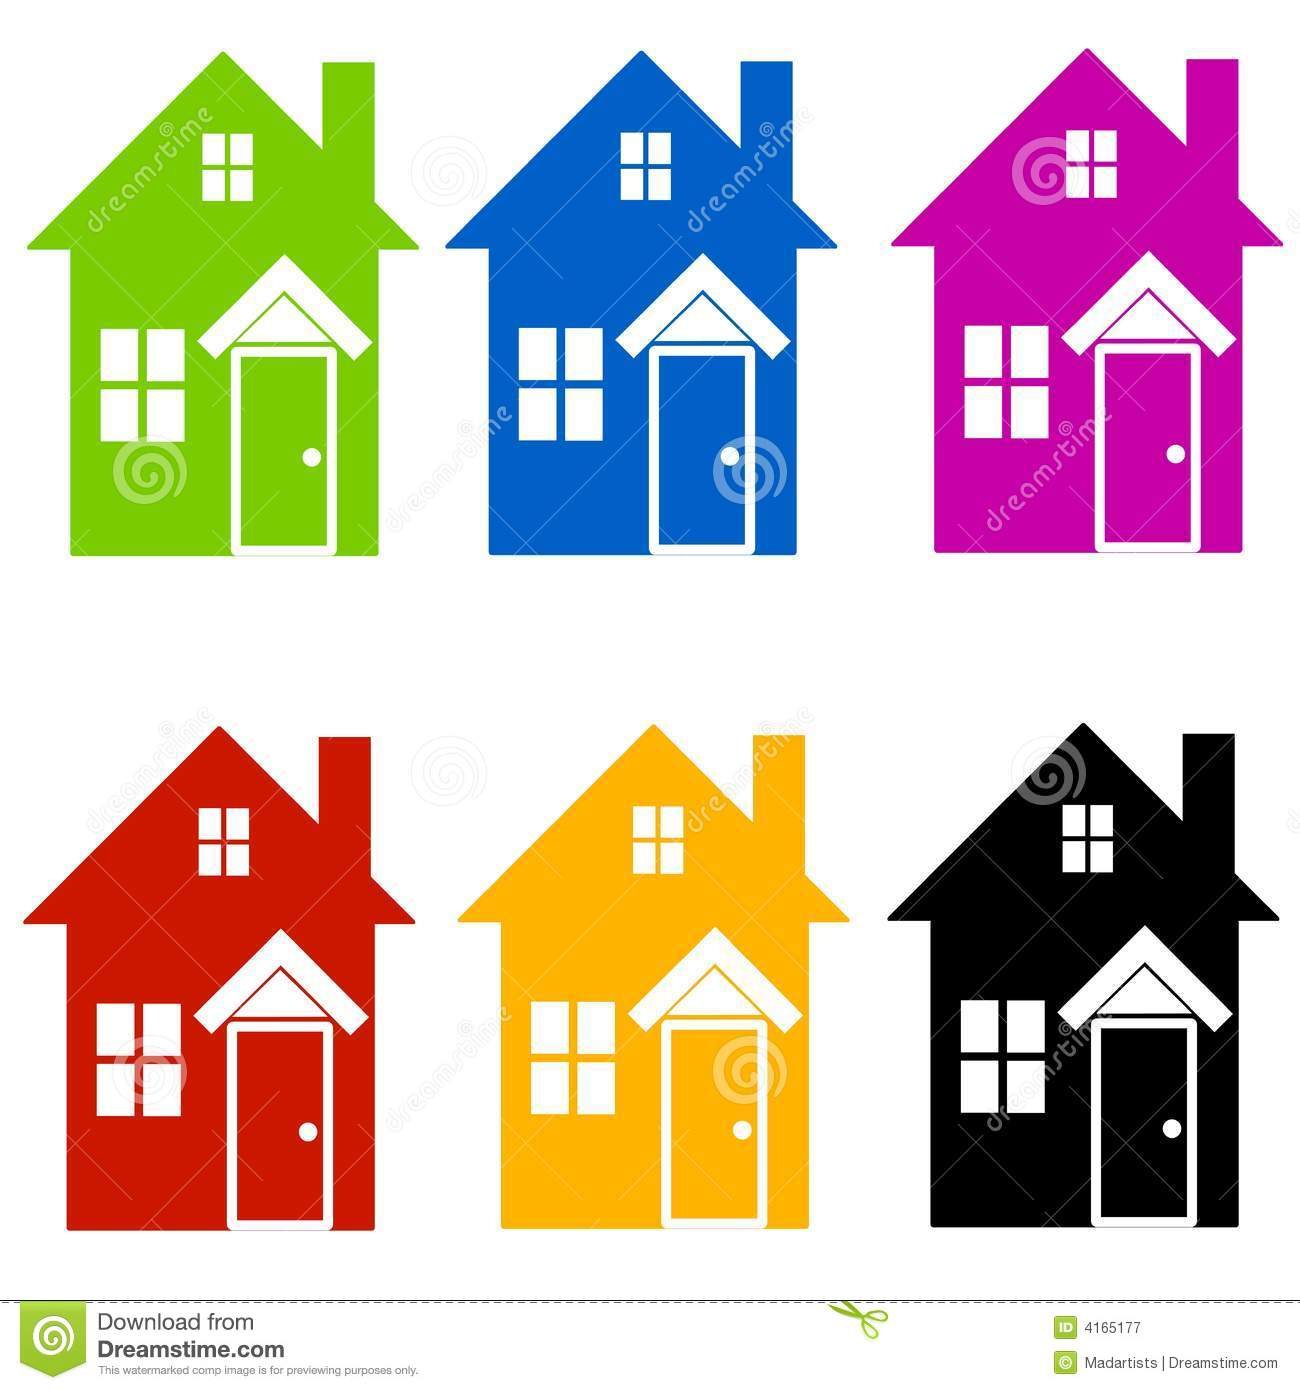 colourful house silhouettes clip art stock illustration rh dreamstime com house clip art free downloads house clip art free images